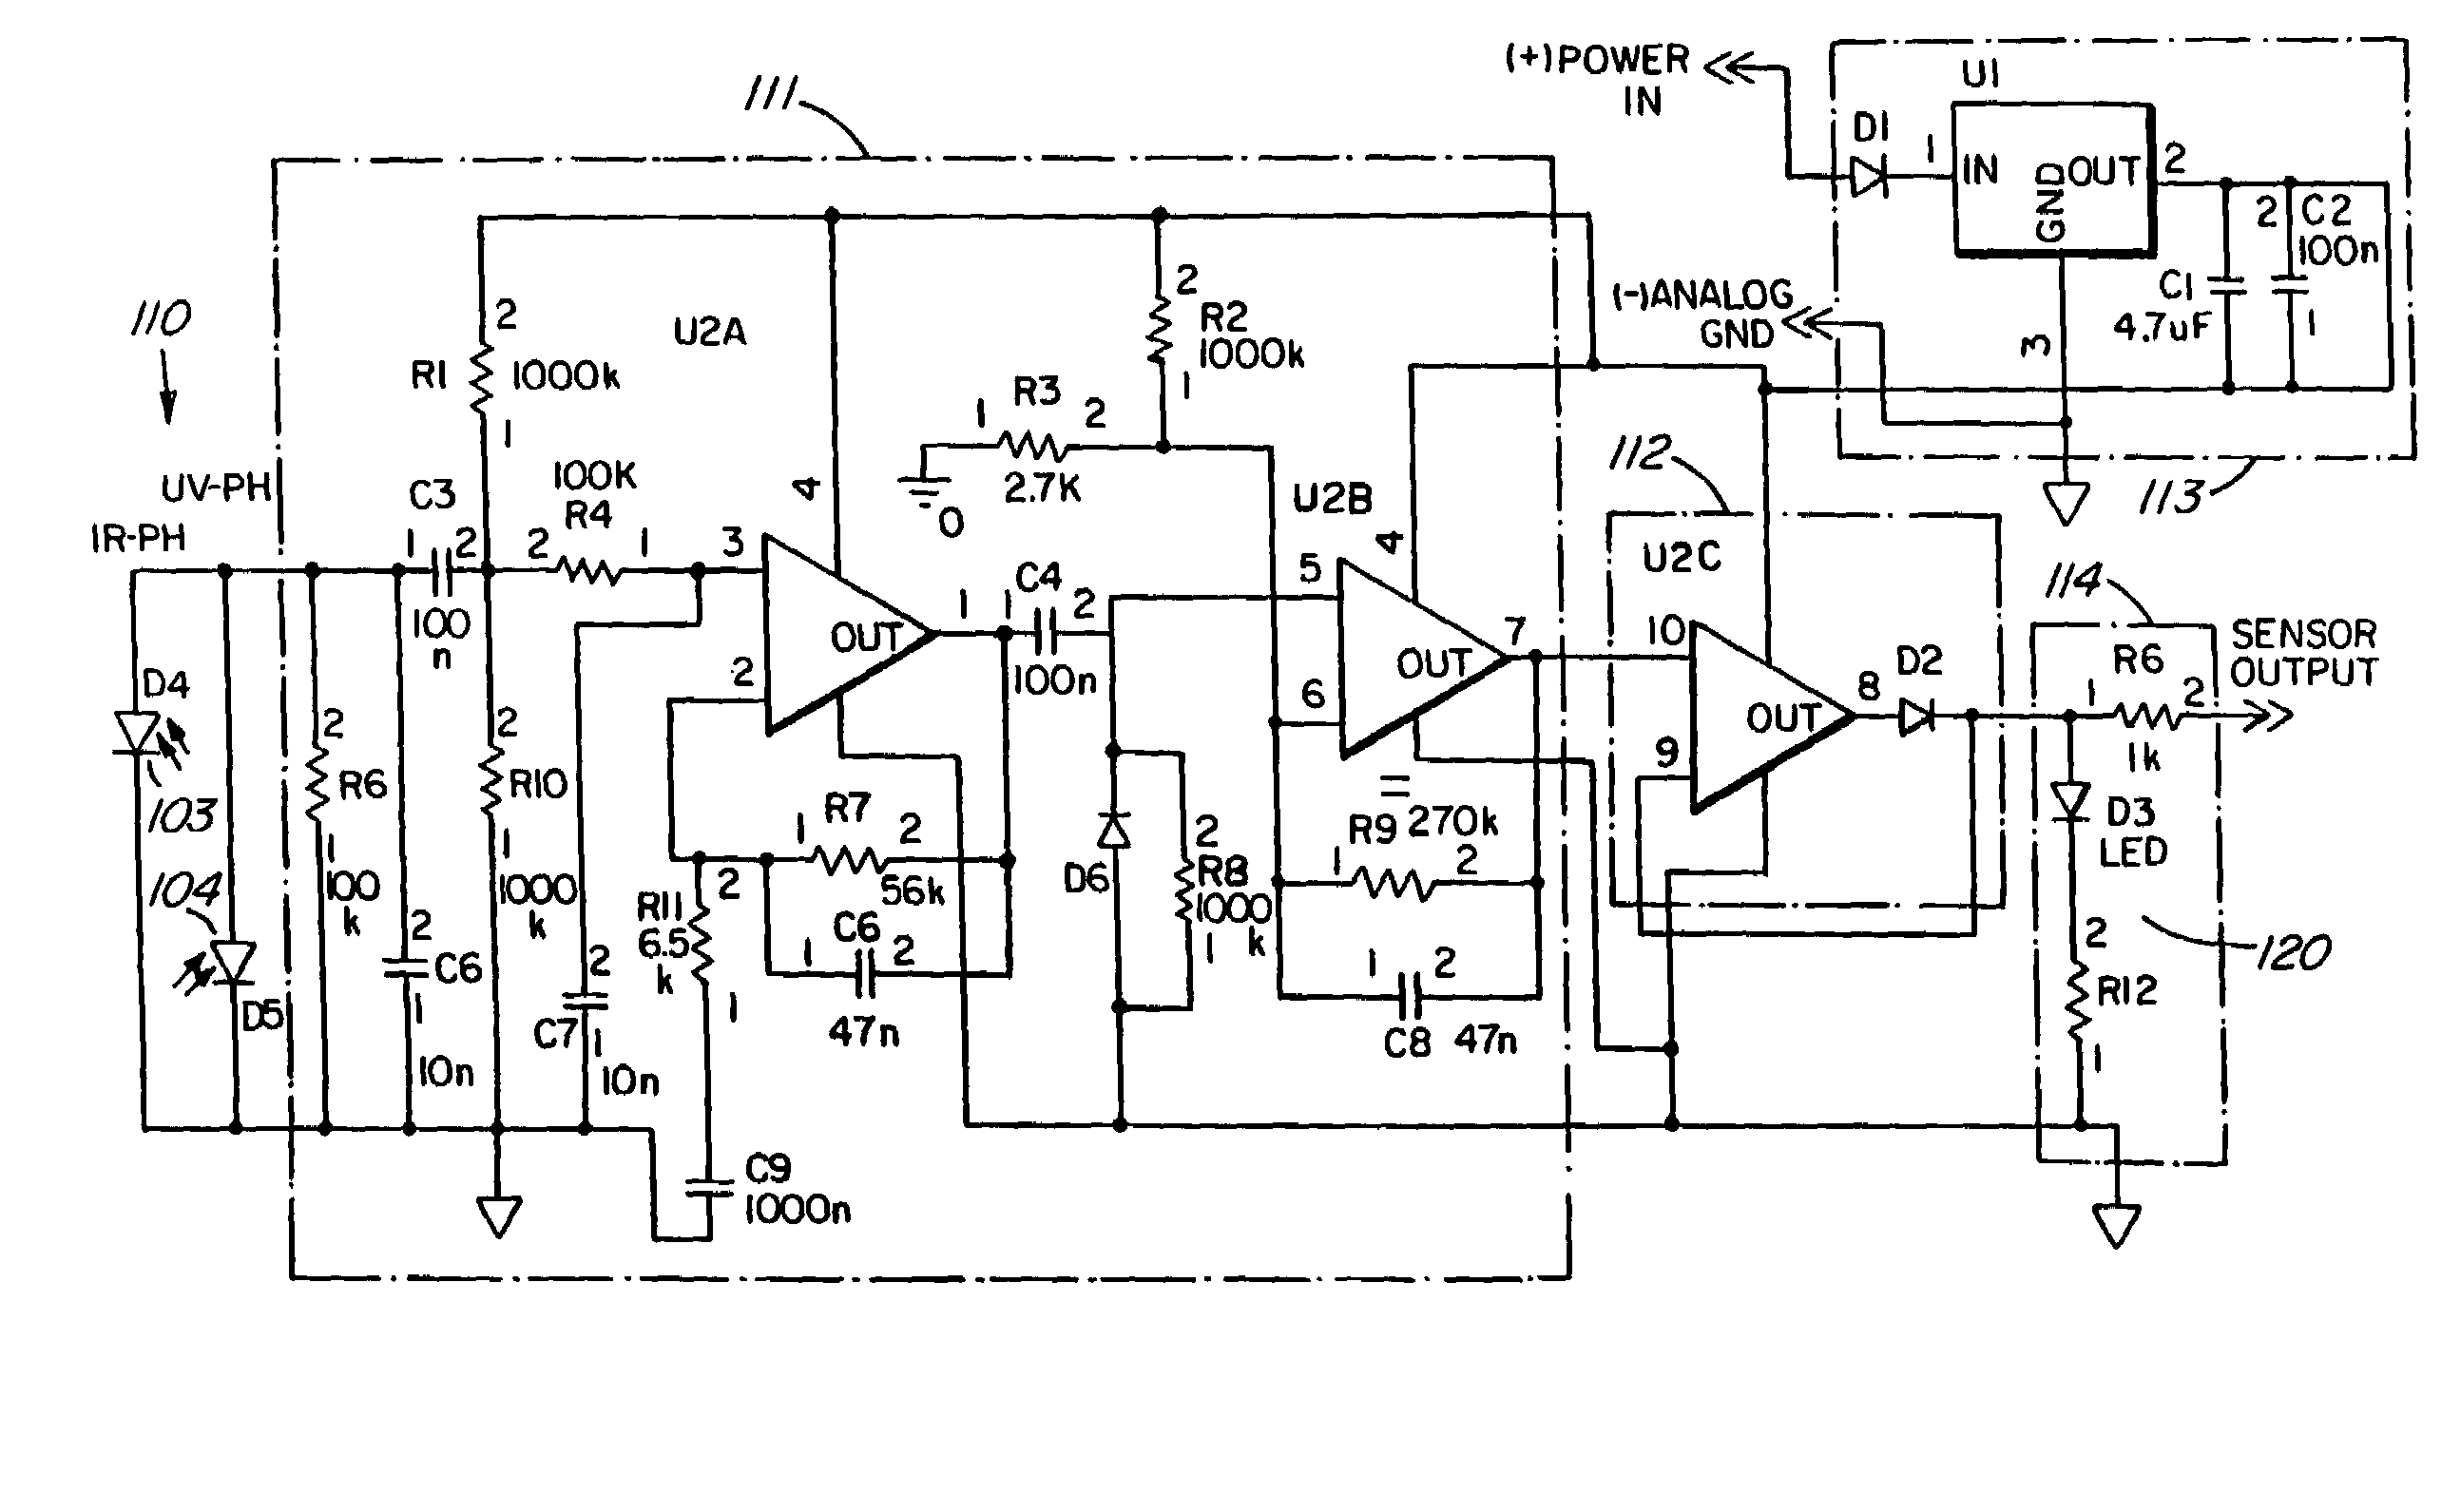 flame nsor wiring diagram jenn vm9224 wiring diagram